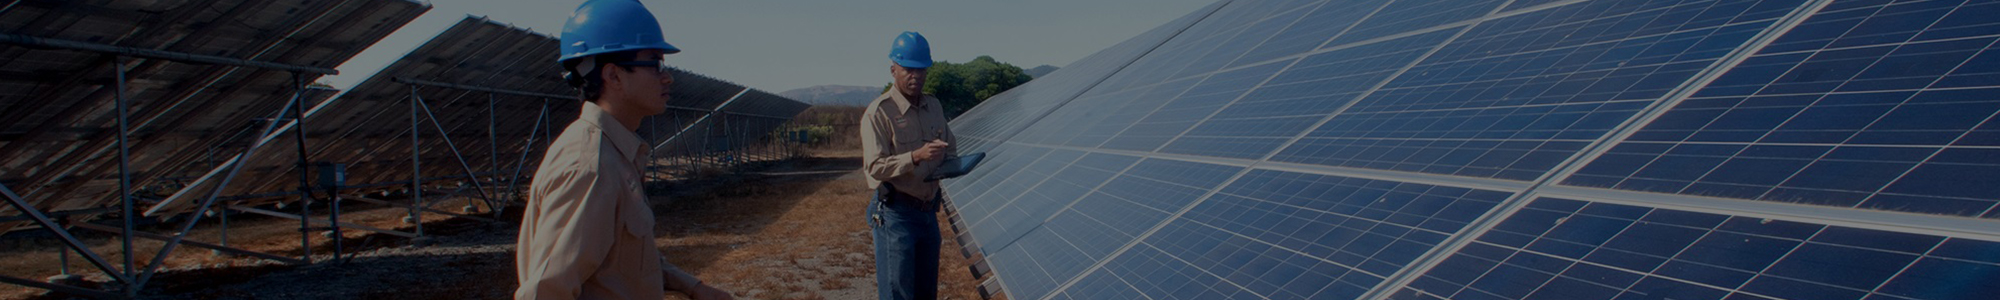 Two workers with tablet evaluating solar panels.